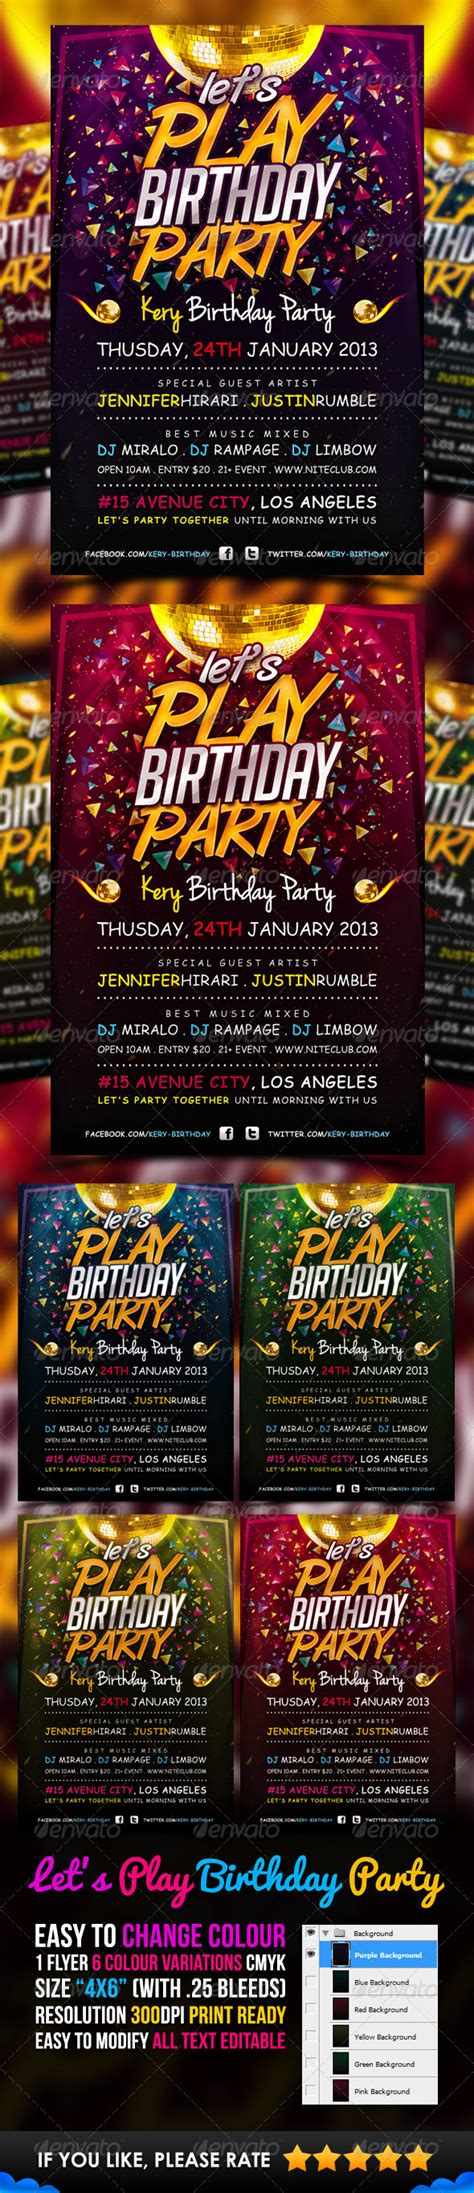 Print Template Graphicriver Lets Play Birthday Party Flyer Template 3442369 187 Dondrup Com Play Flyer Template